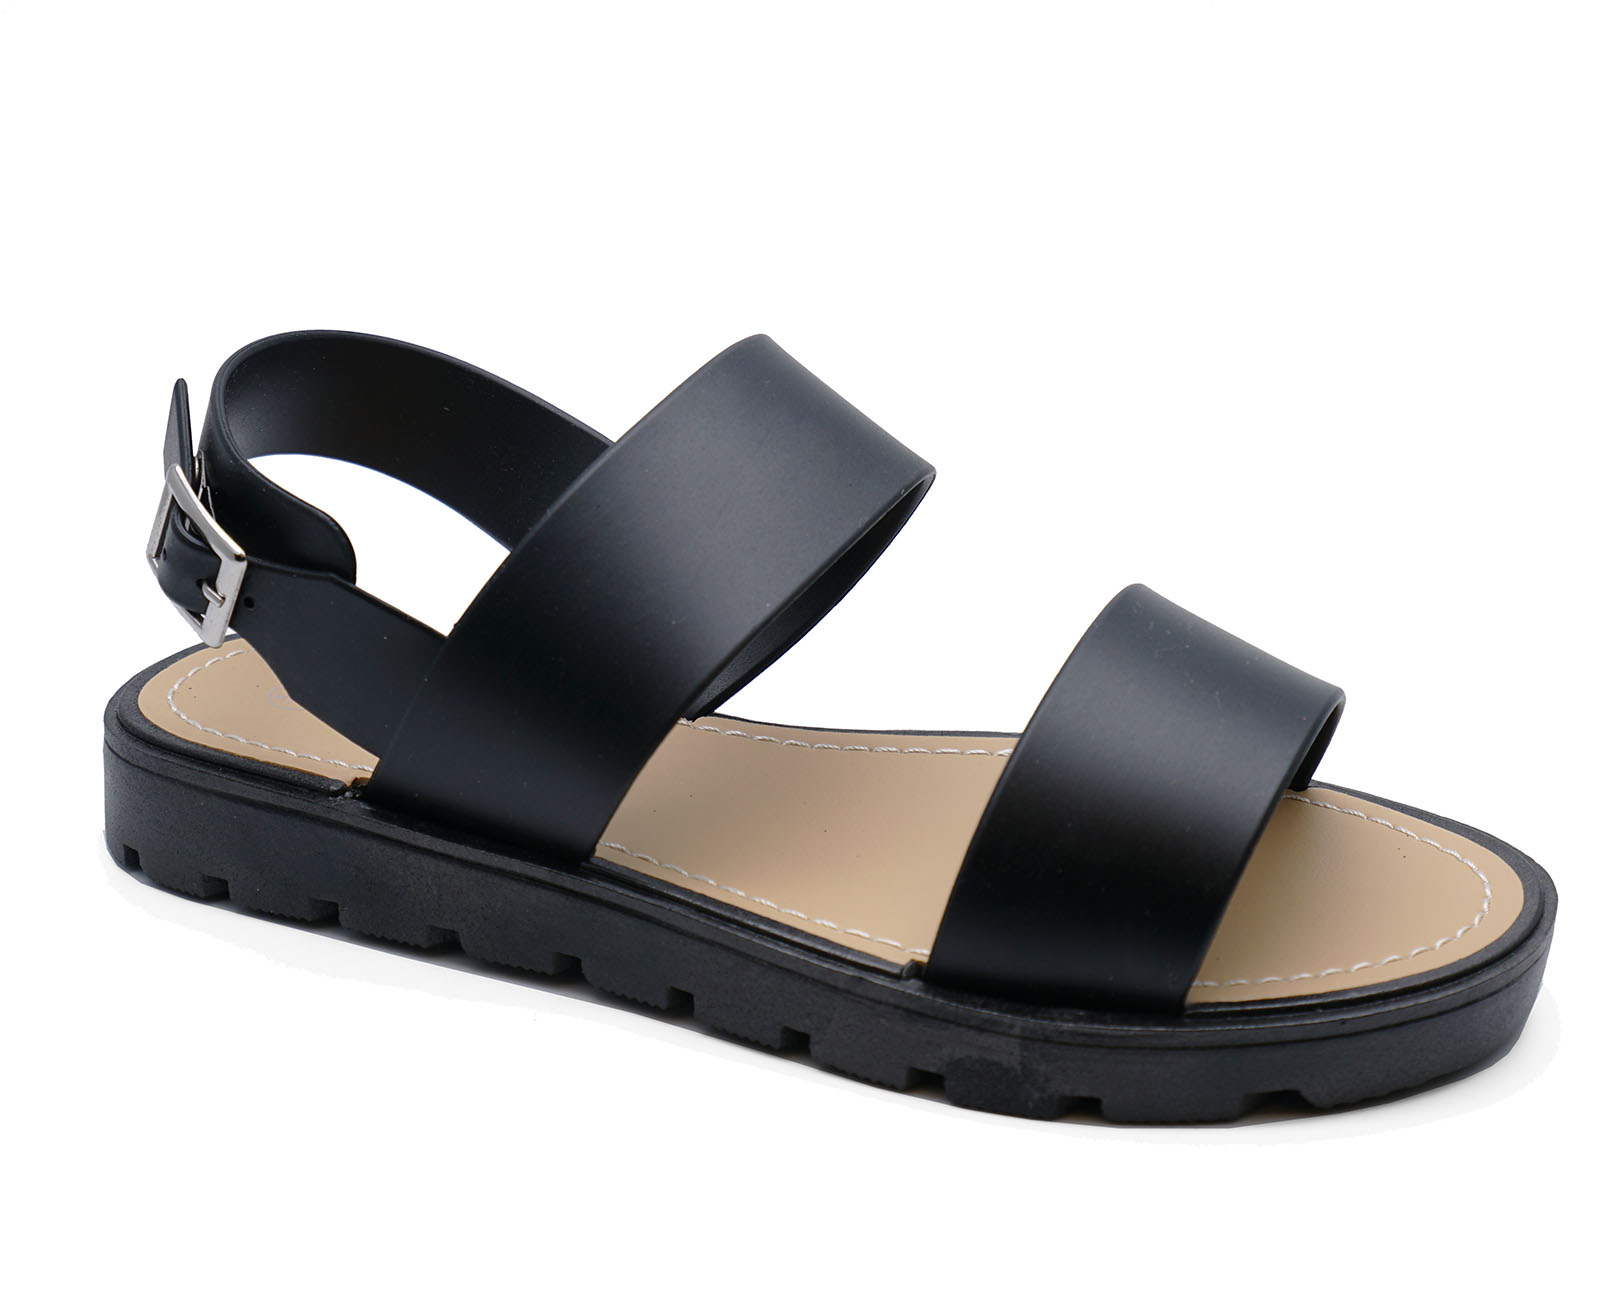 47a8f8bbb3a Sentinel LADIES BLACK FLAT COMFY WALKING GLADIATOR CASUAL SANDALS SHOES  PUMPS SIZES 3-8